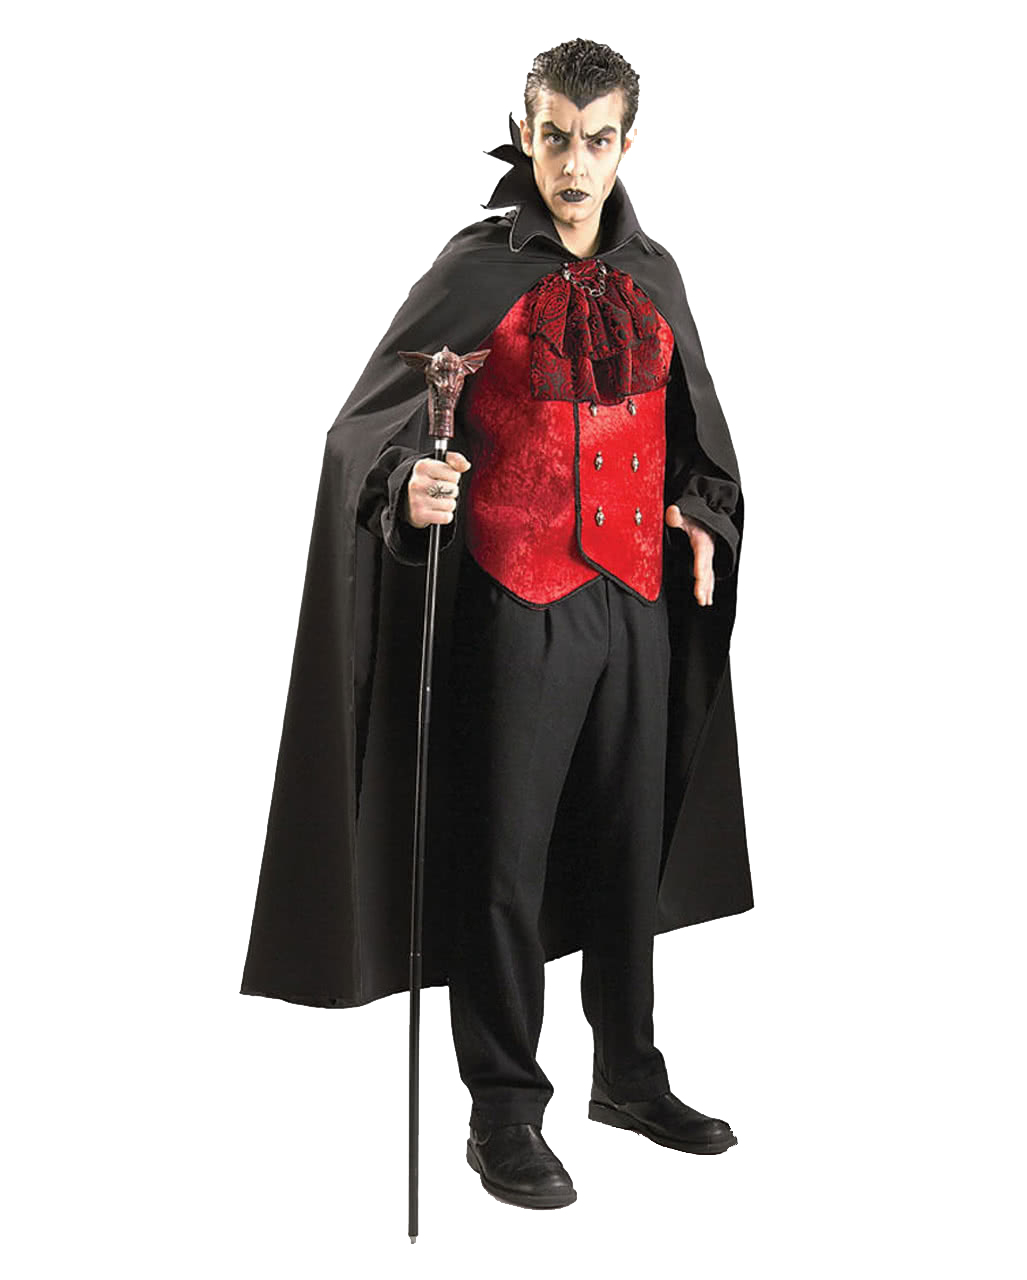 337459937be Gothic Count Dracula costume